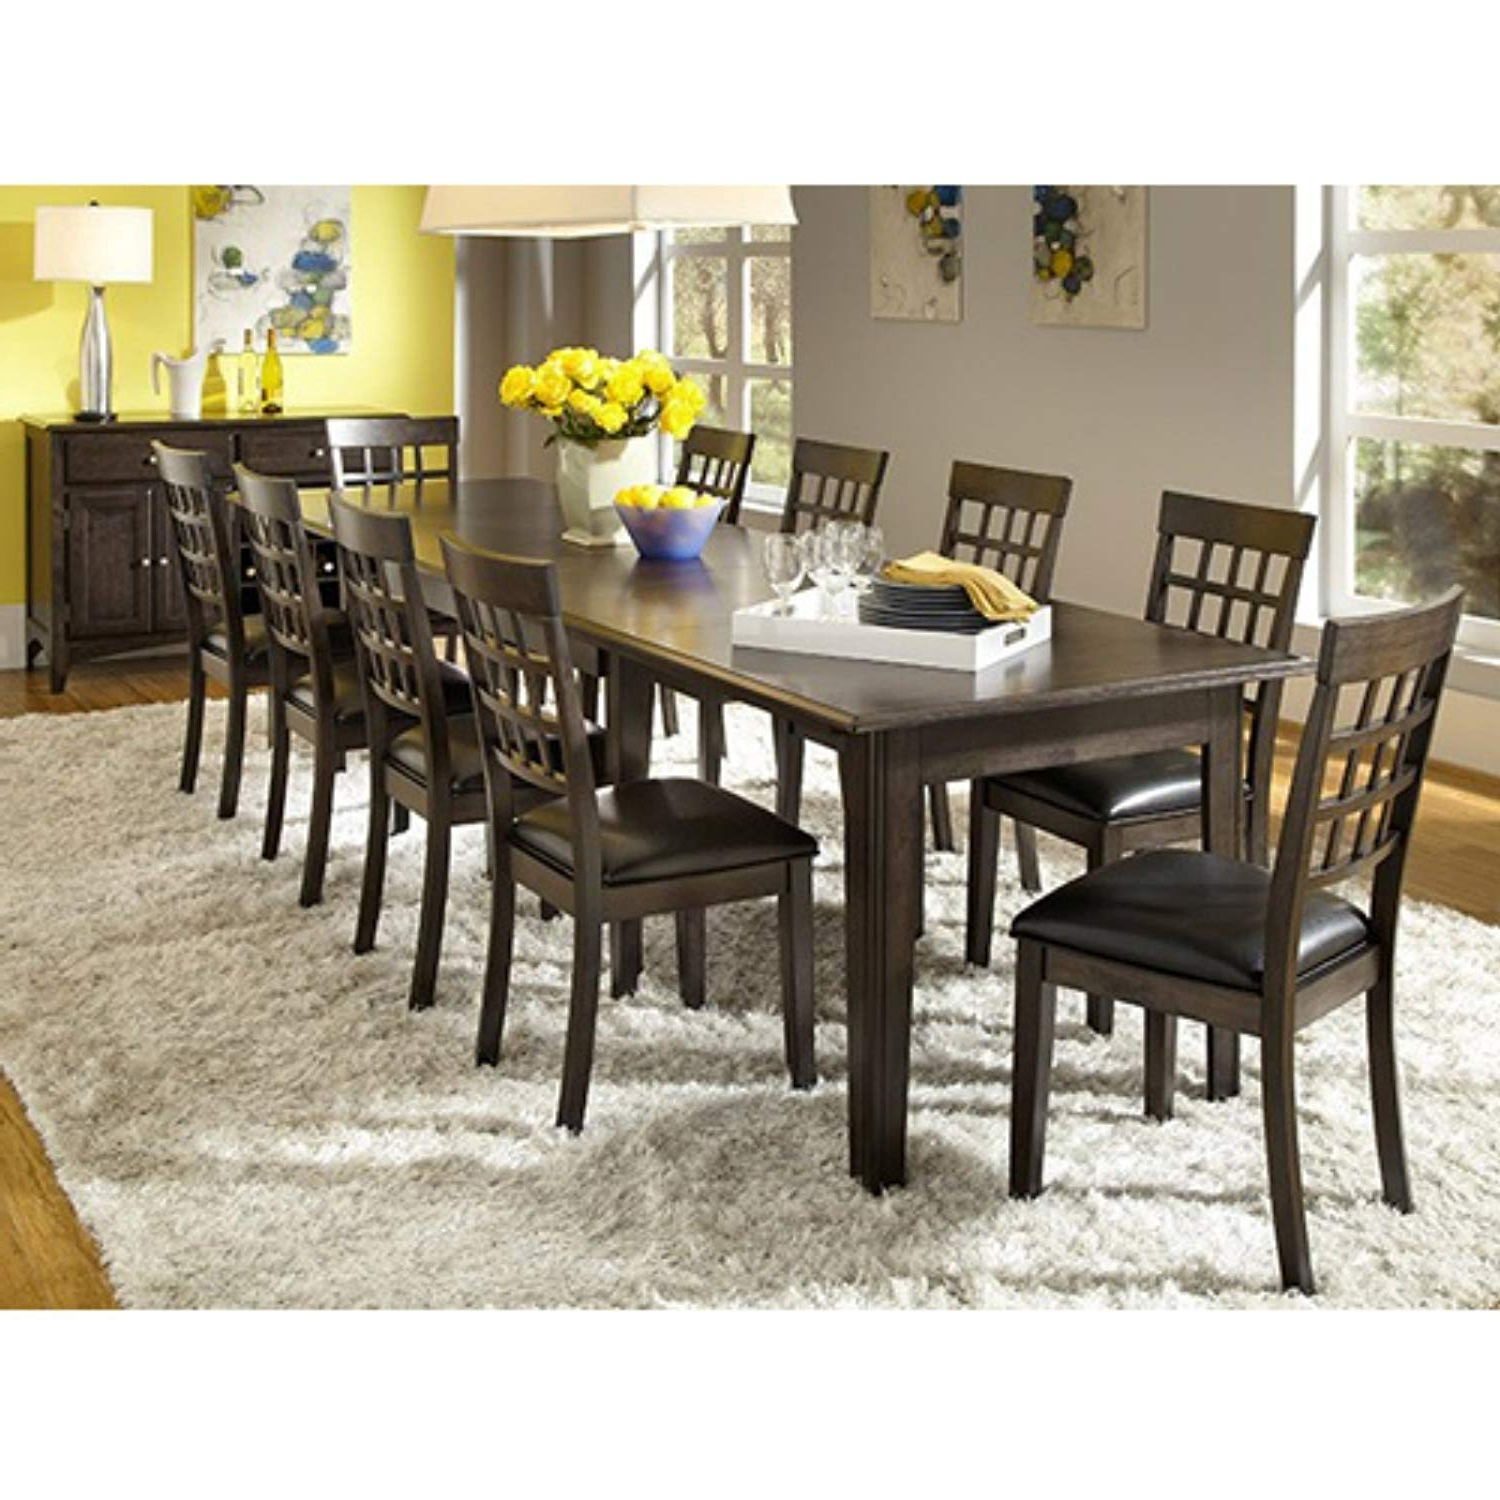 "Amazon: A America Bristol Point 132"" Rectangular Dining Table Pertaining To Most Popular Dining Tables Grey Chairs (View 25 of 25)"